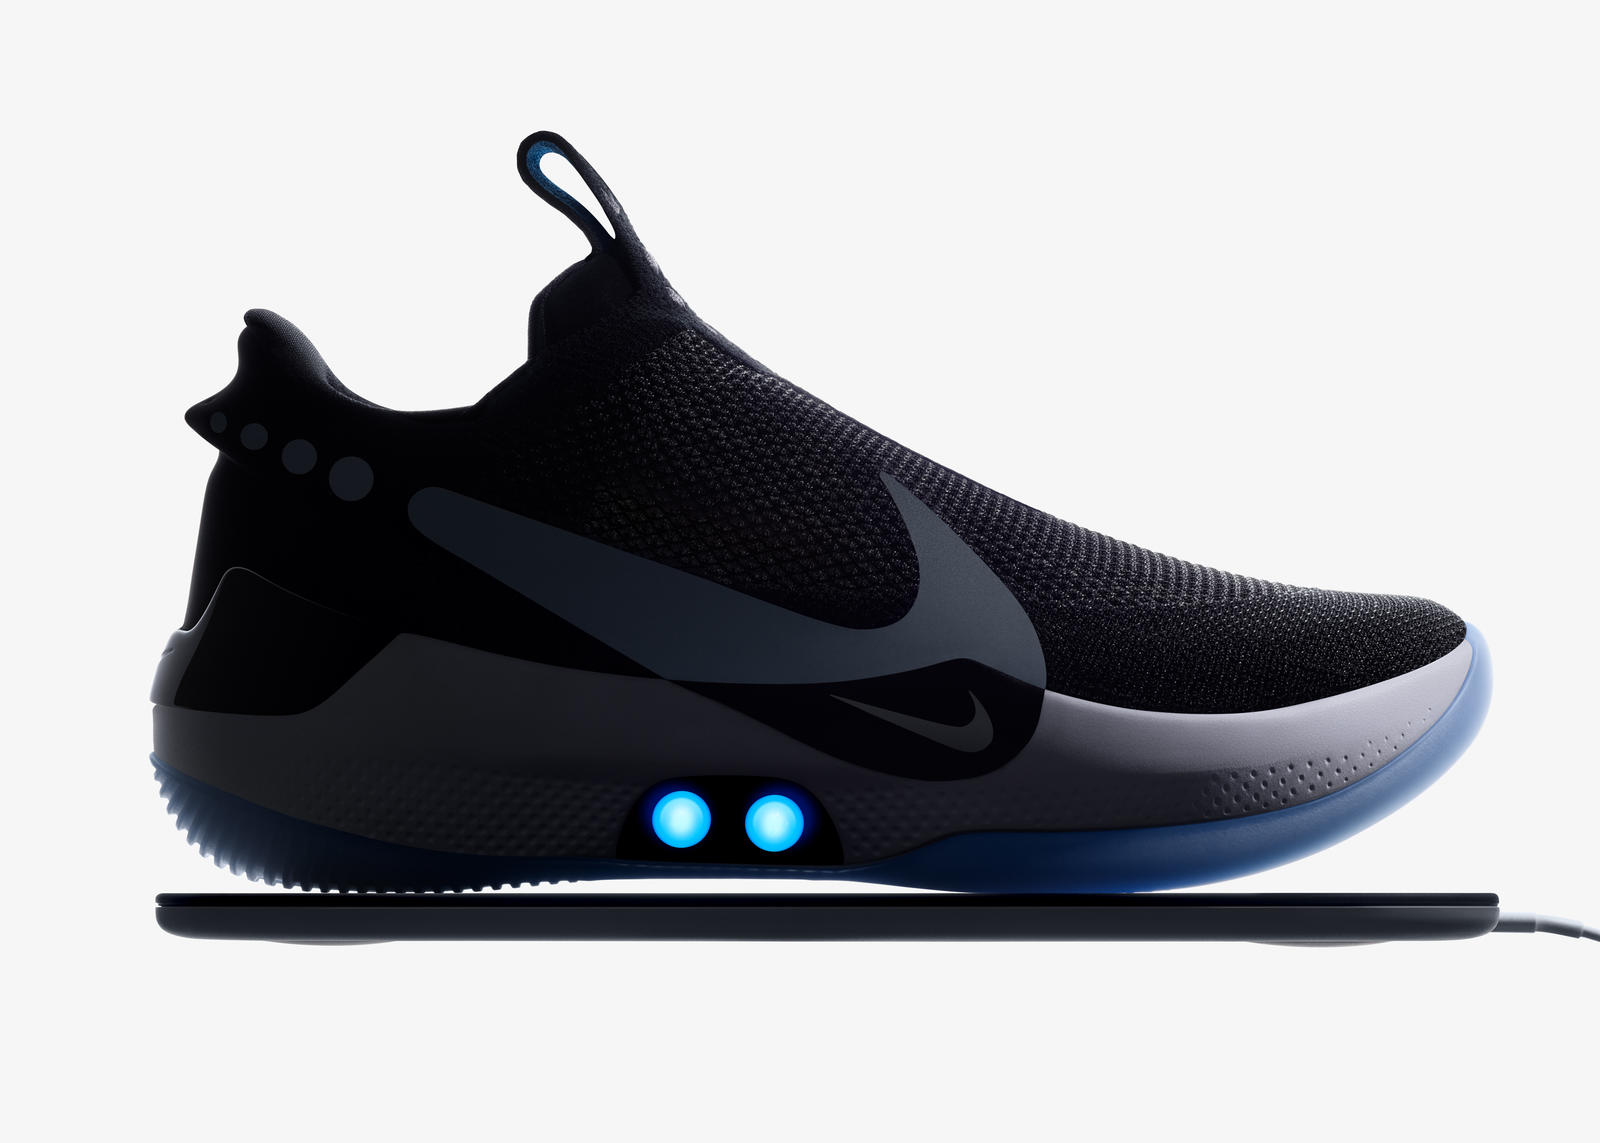 7f93b64e618a8 What is Nike Adapt  4. The new Nike Adapt BB basketball shoe